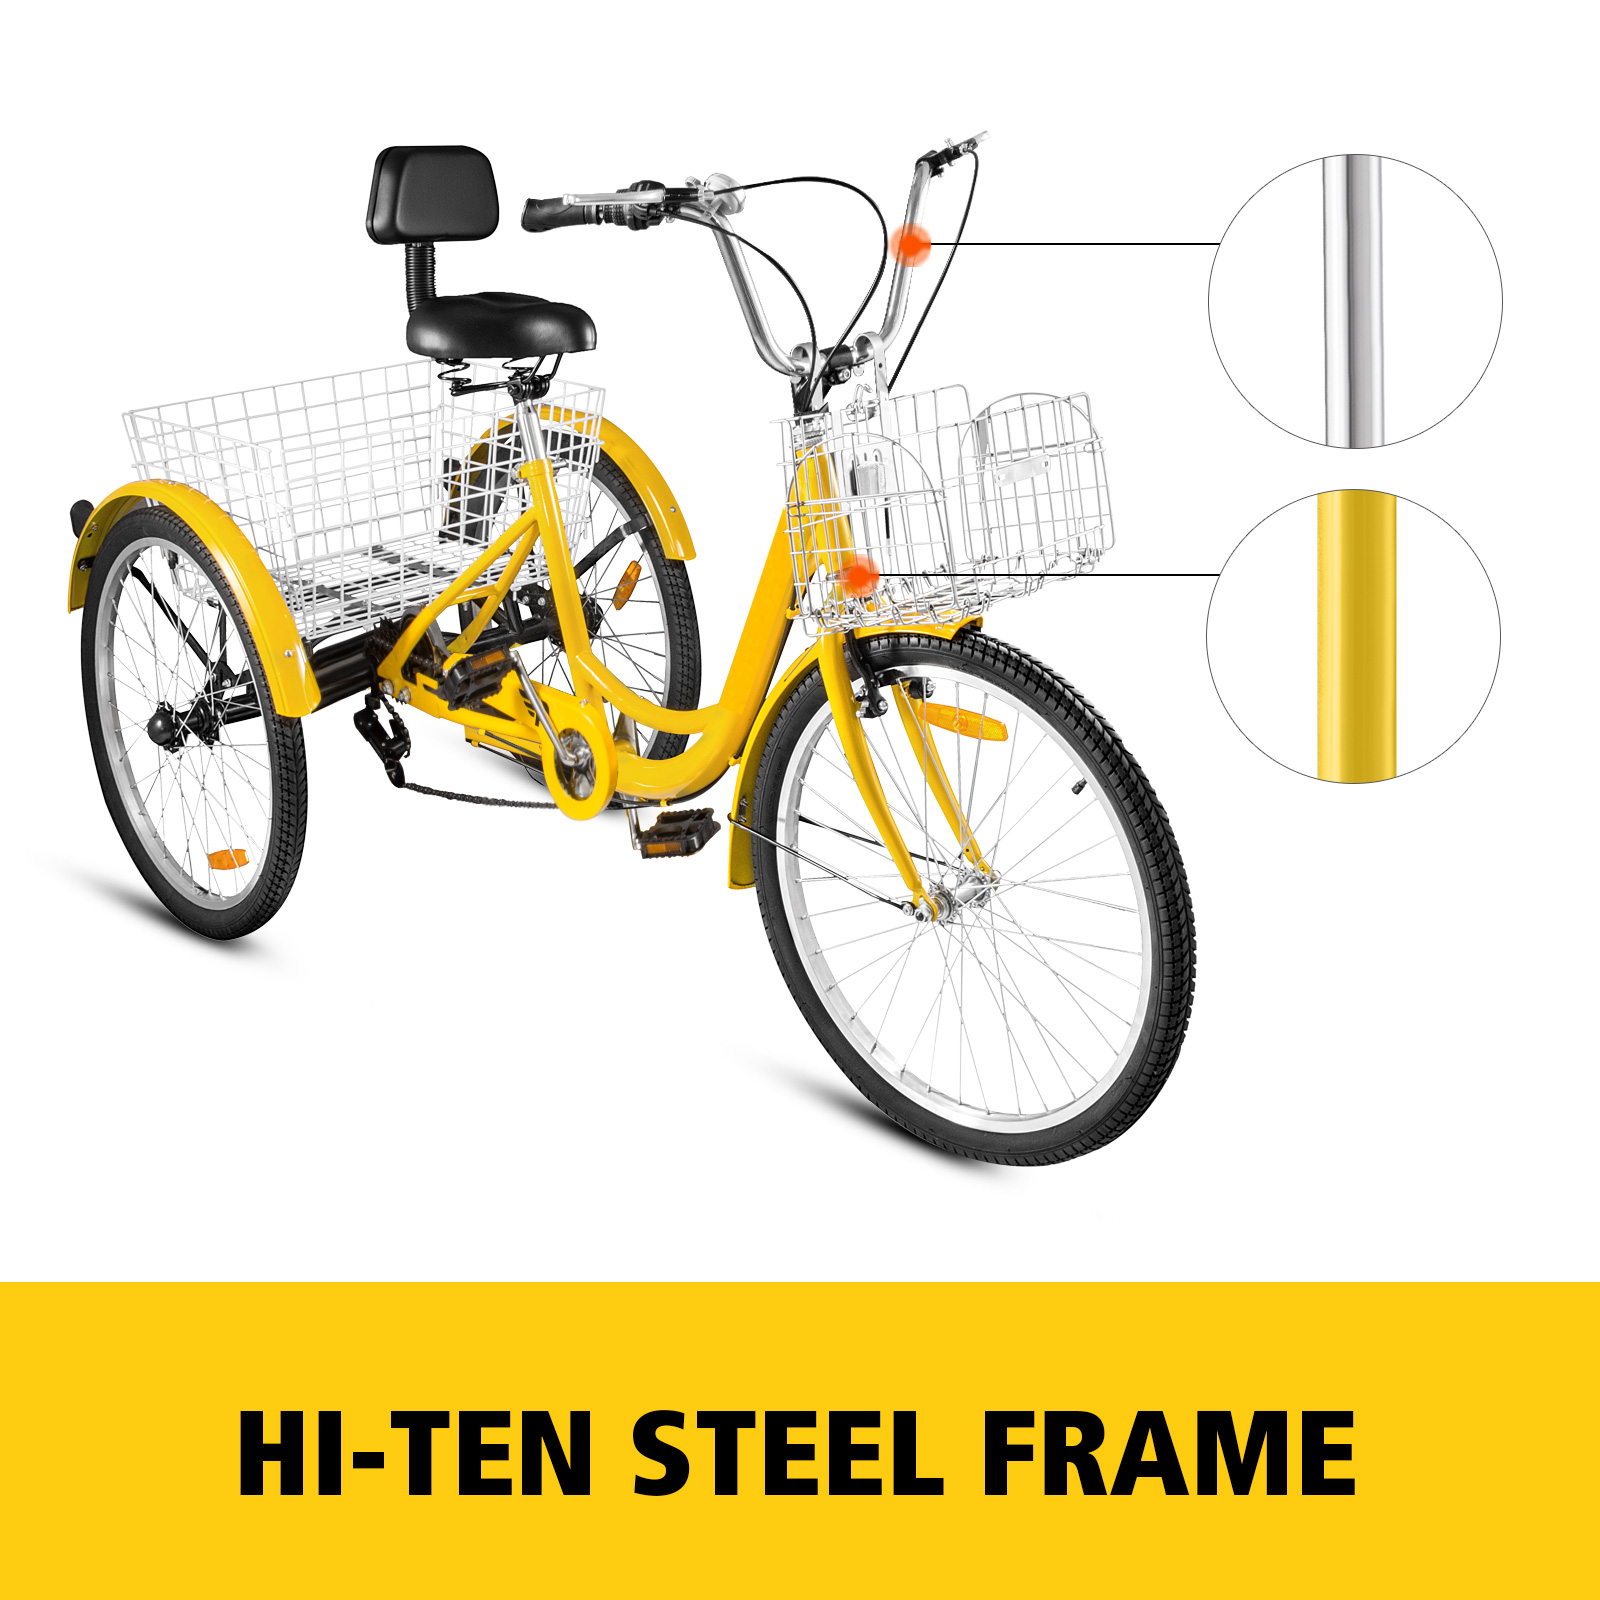 20-24-26-034-Adult-Tricycle-1-7-Speed-3-Wheel-For-Shopping-W-Installation-Tools miniature 374